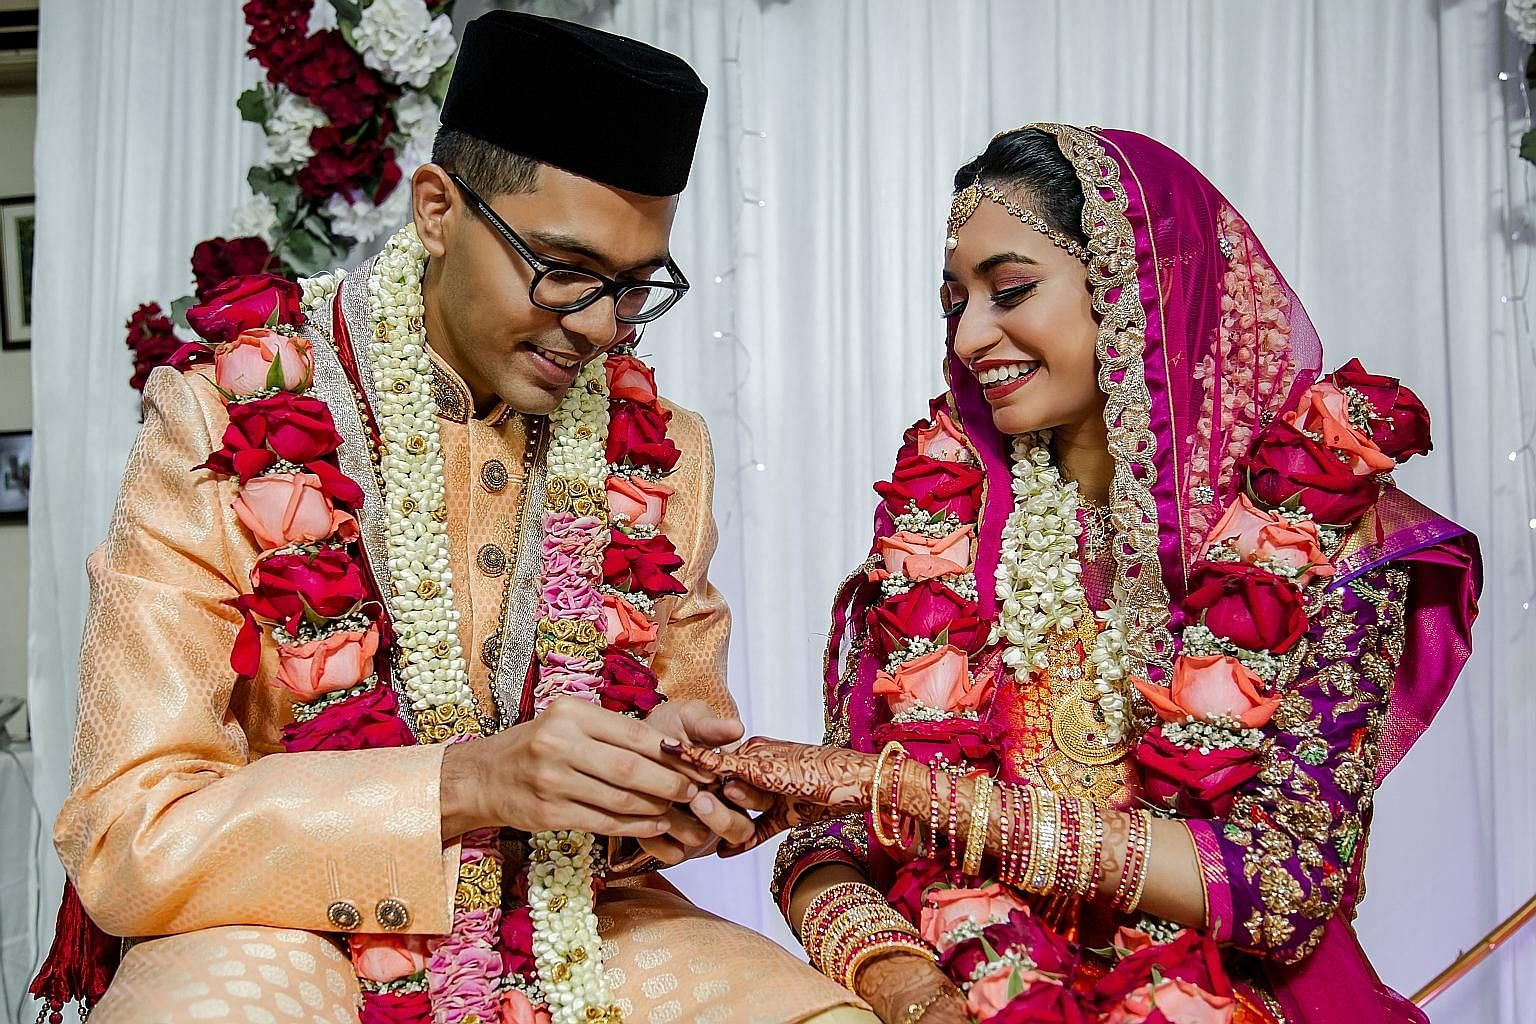 Chef Chung Deming and sports massage therapist Choy Zhen Fang had planned a 25-table wedding dThe past few months have been a long honeymoon for newlyweds Ashekul Ameen (left) and Rakeeza Sheren, who tied the knot in her family's Housing Board flat on Mar